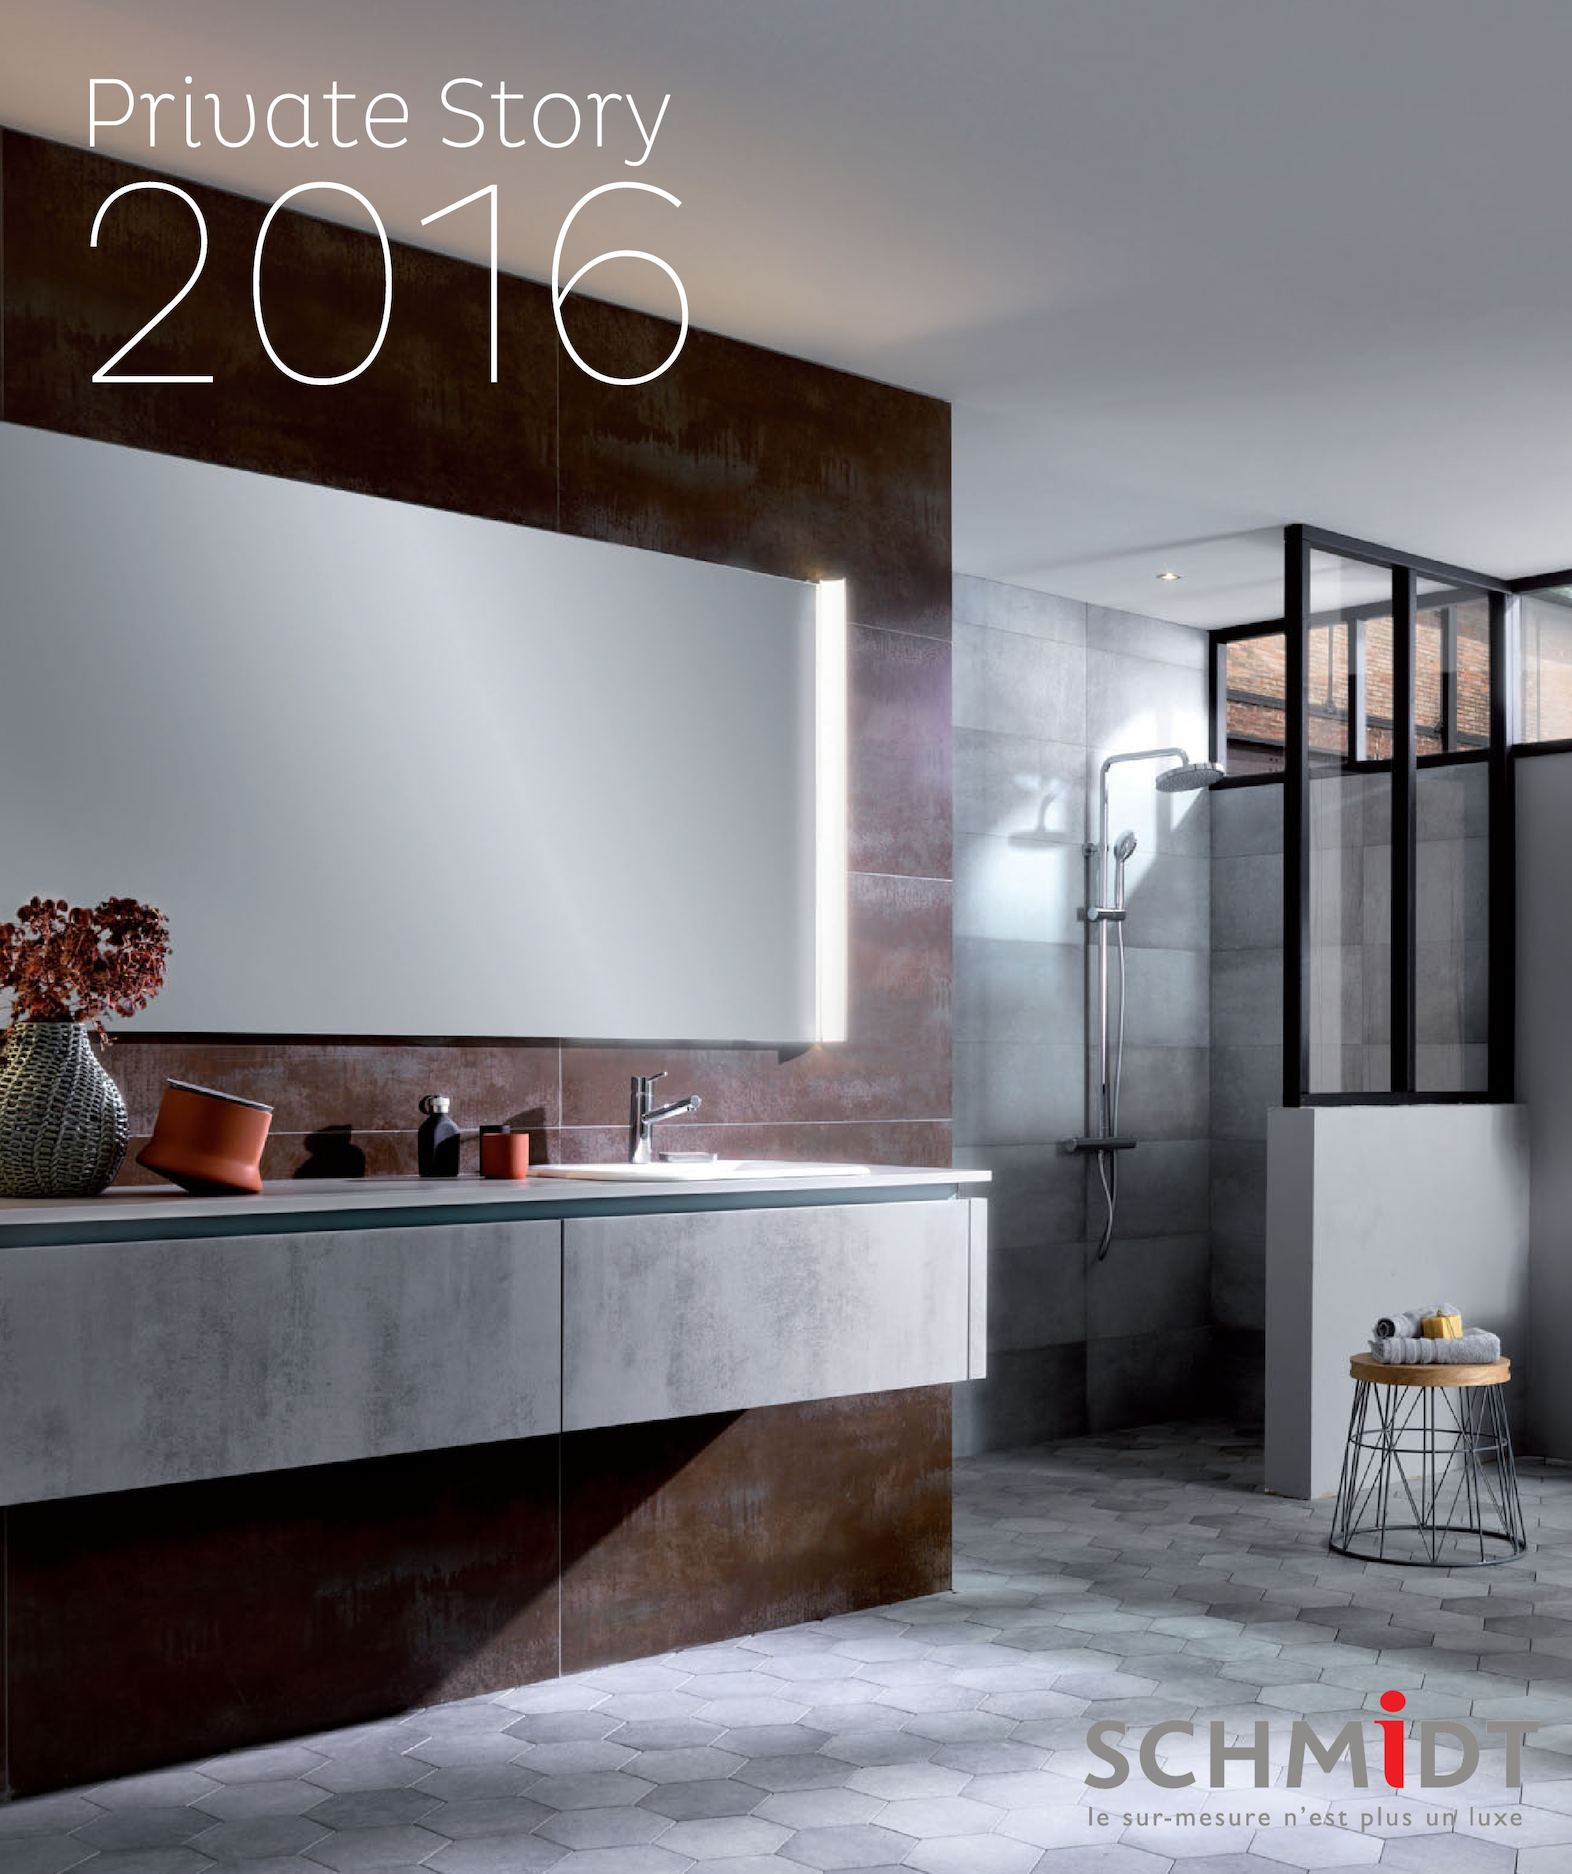 calam o catalogue schmidt salles de bains sur mesure 2016. Black Bedroom Furniture Sets. Home Design Ideas